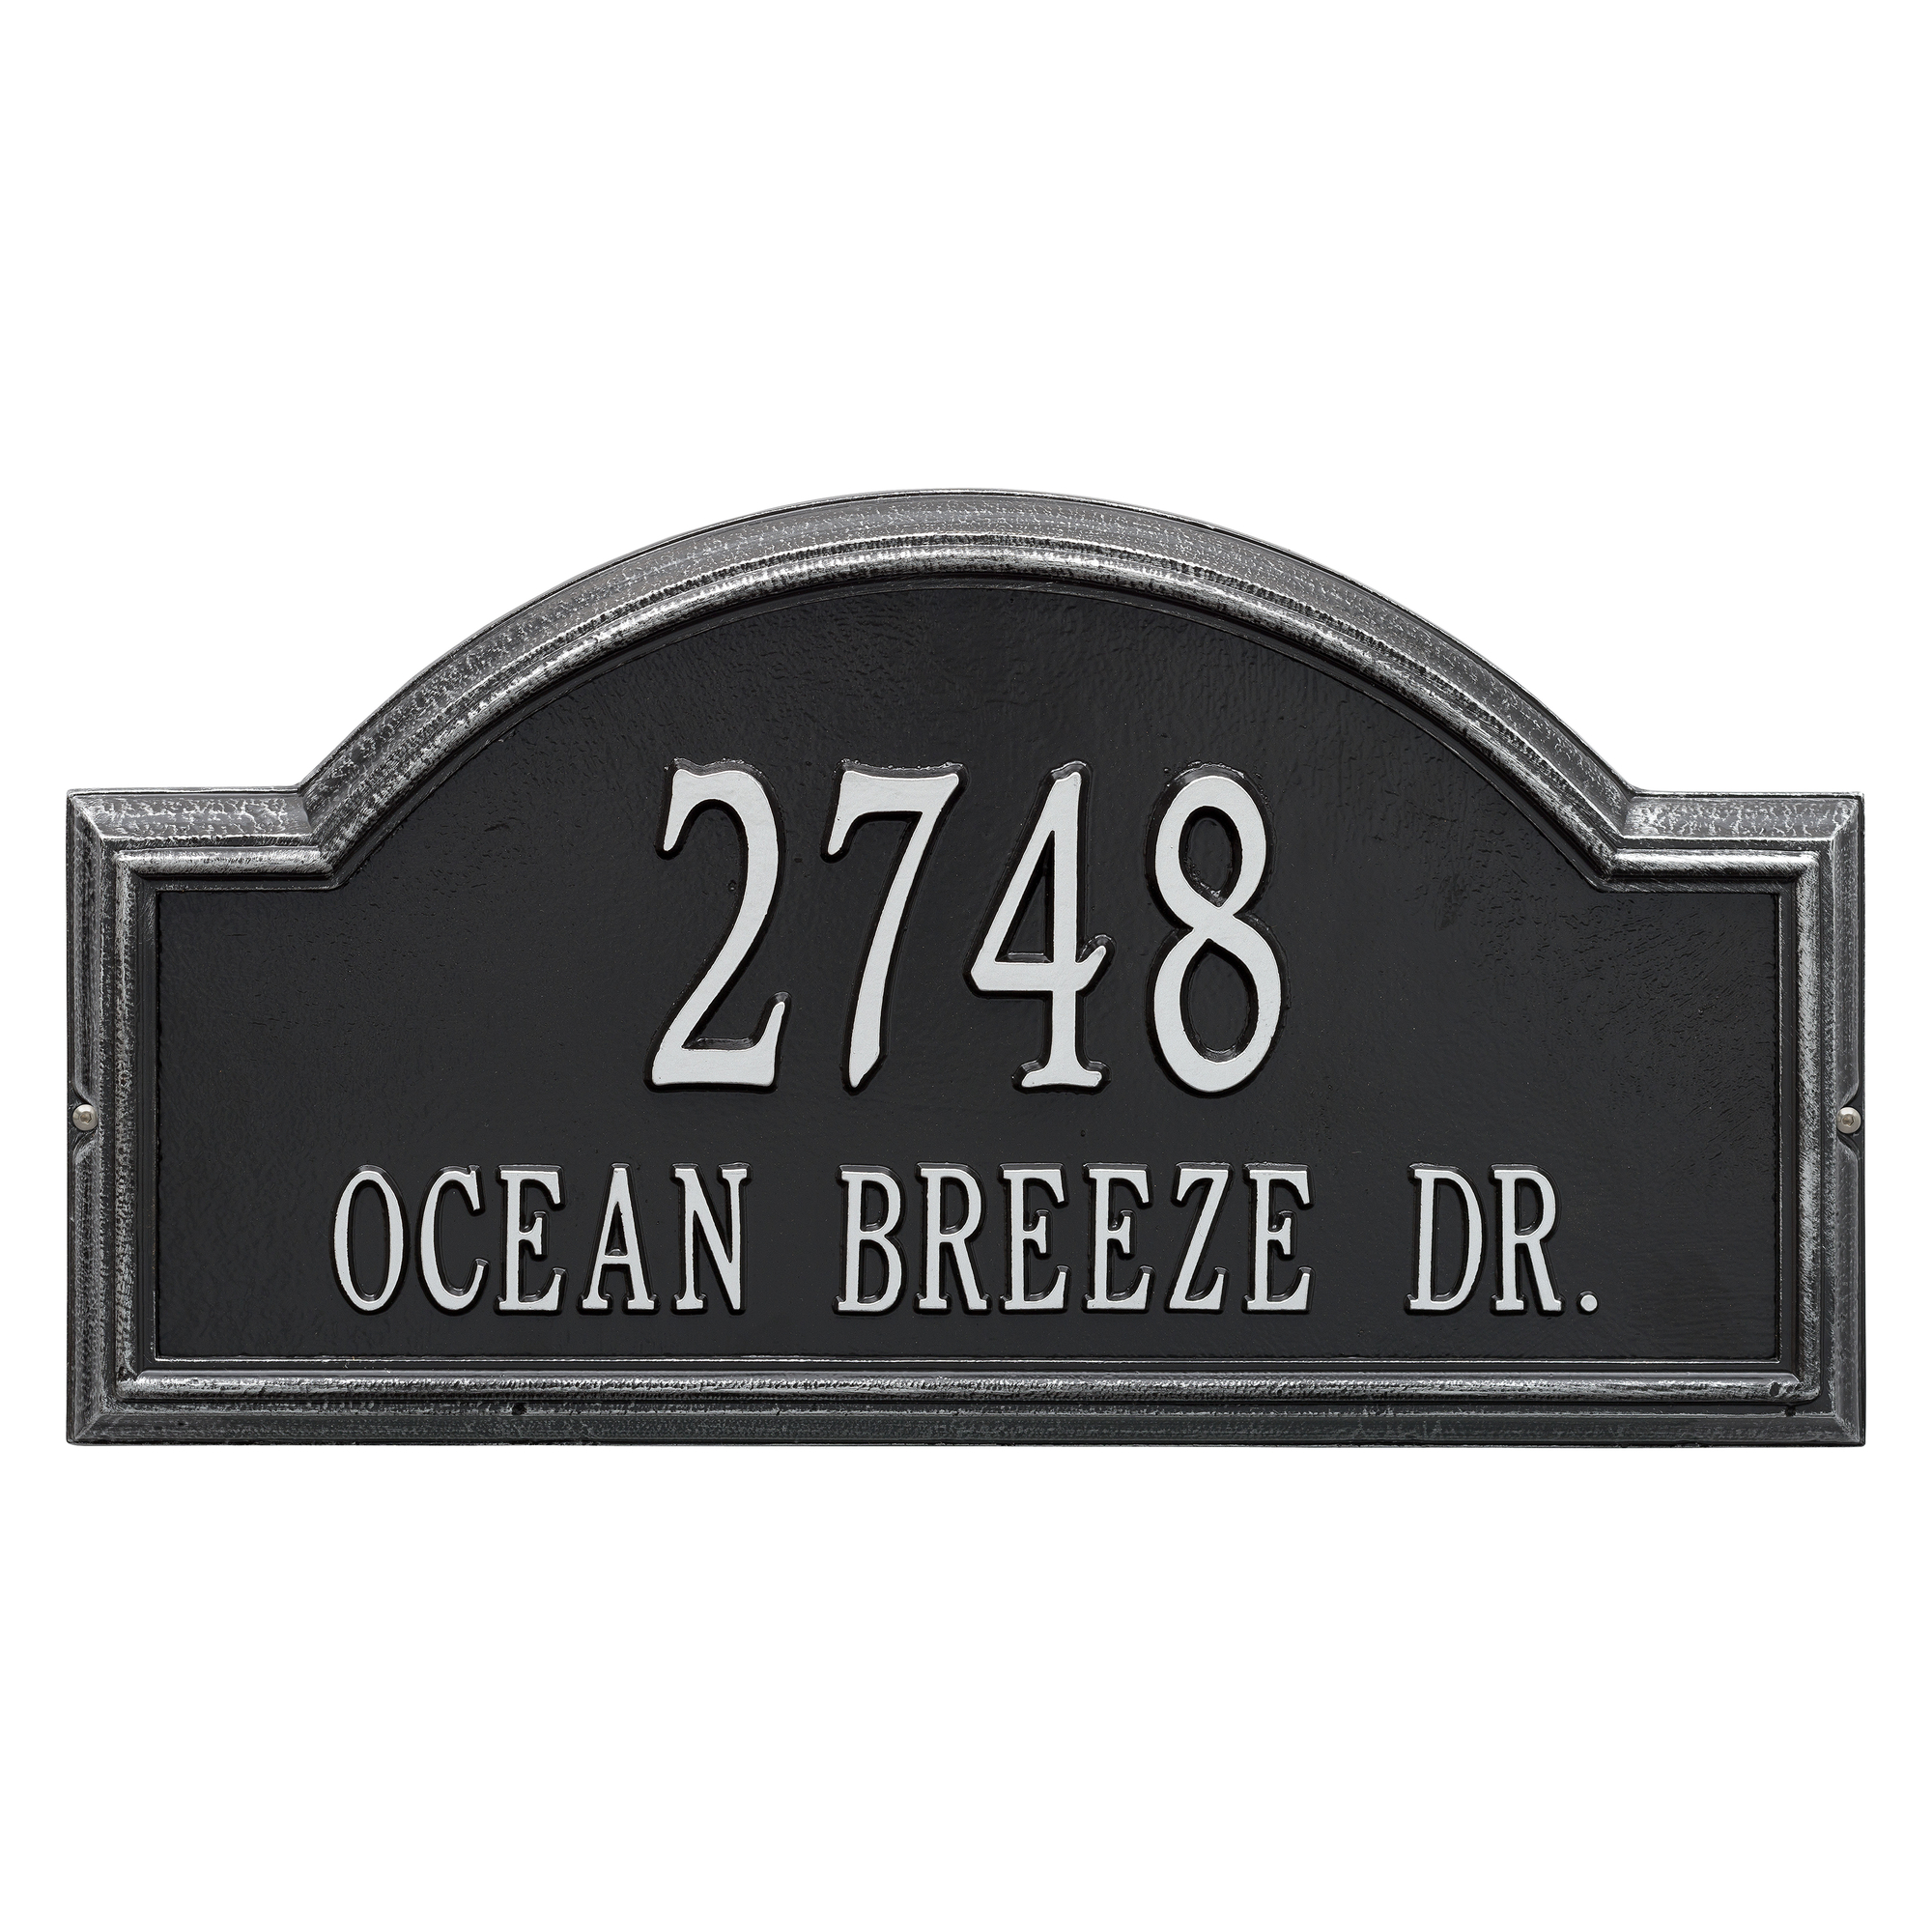 Personalized Whitehall Products Providence 2-Line Arch Address Plaque in Black Silver by Whitehall